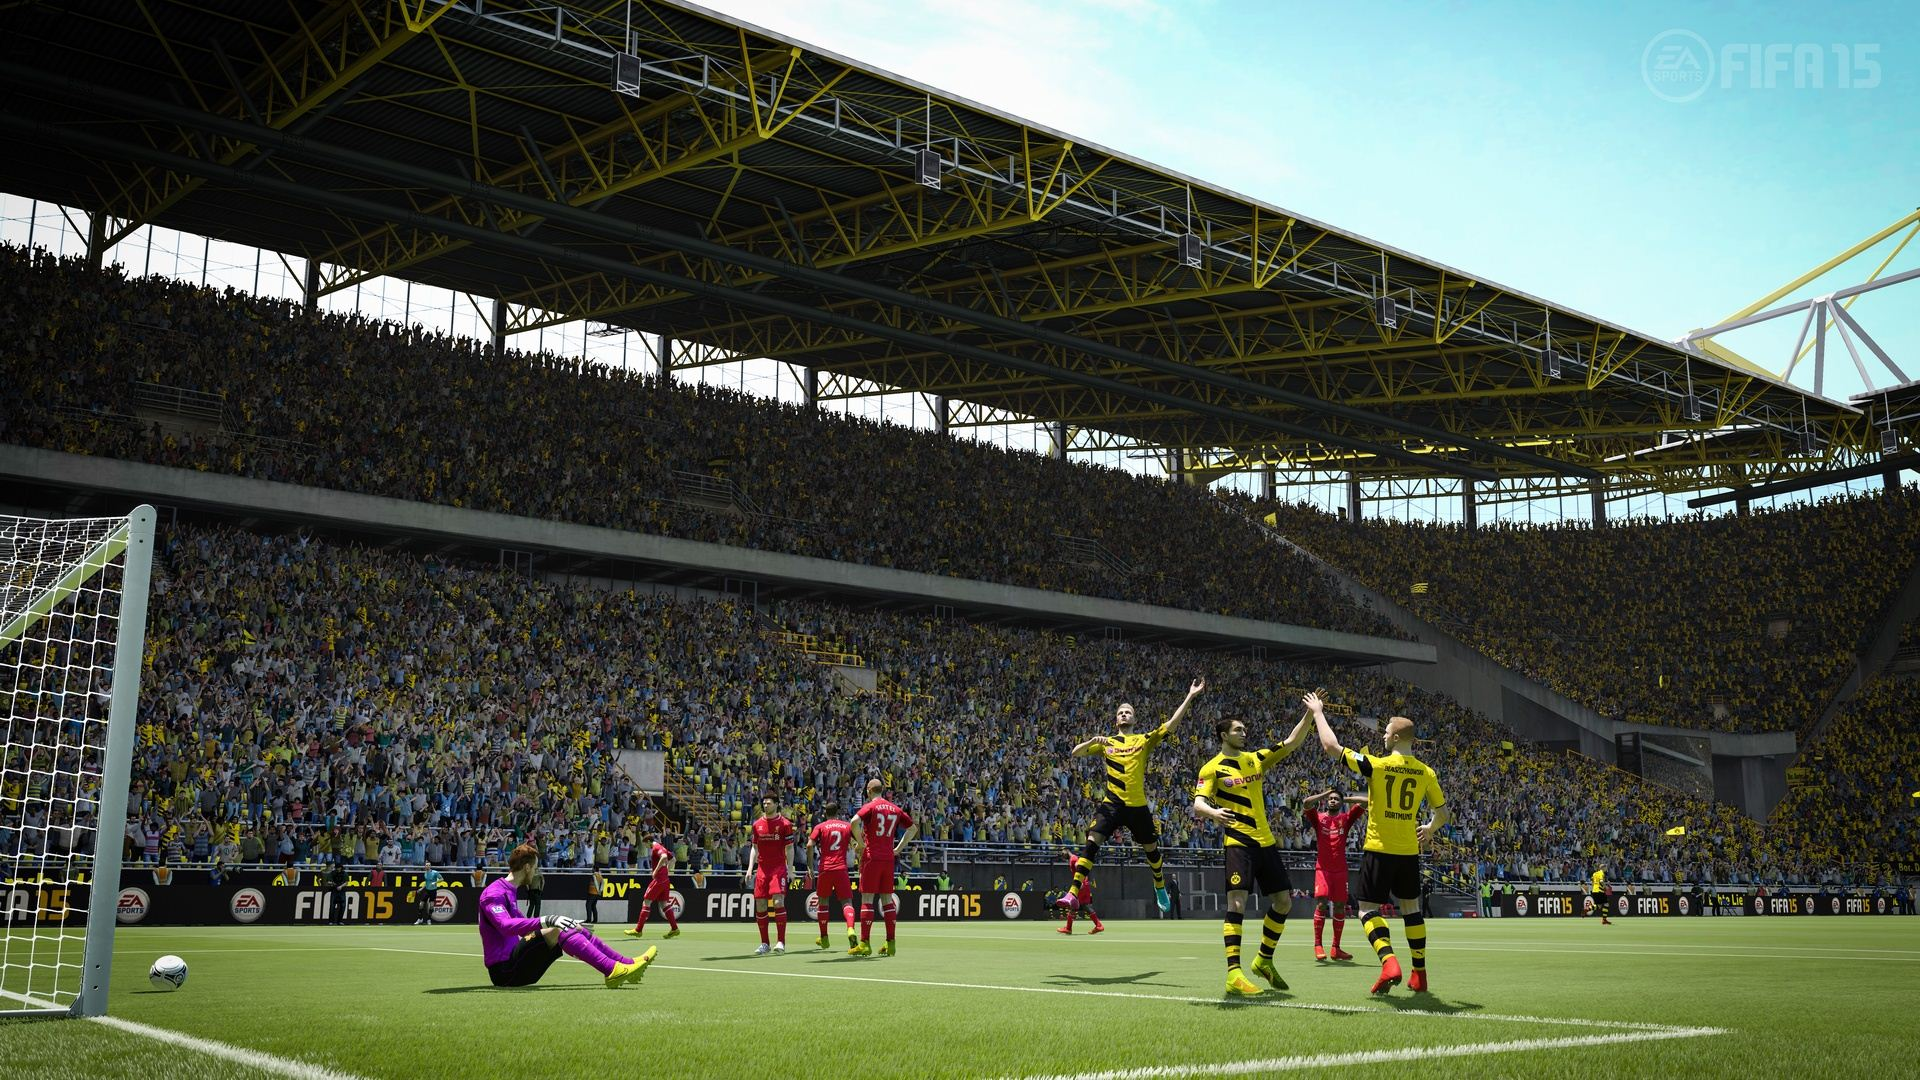 fifa 15 download pc free full version